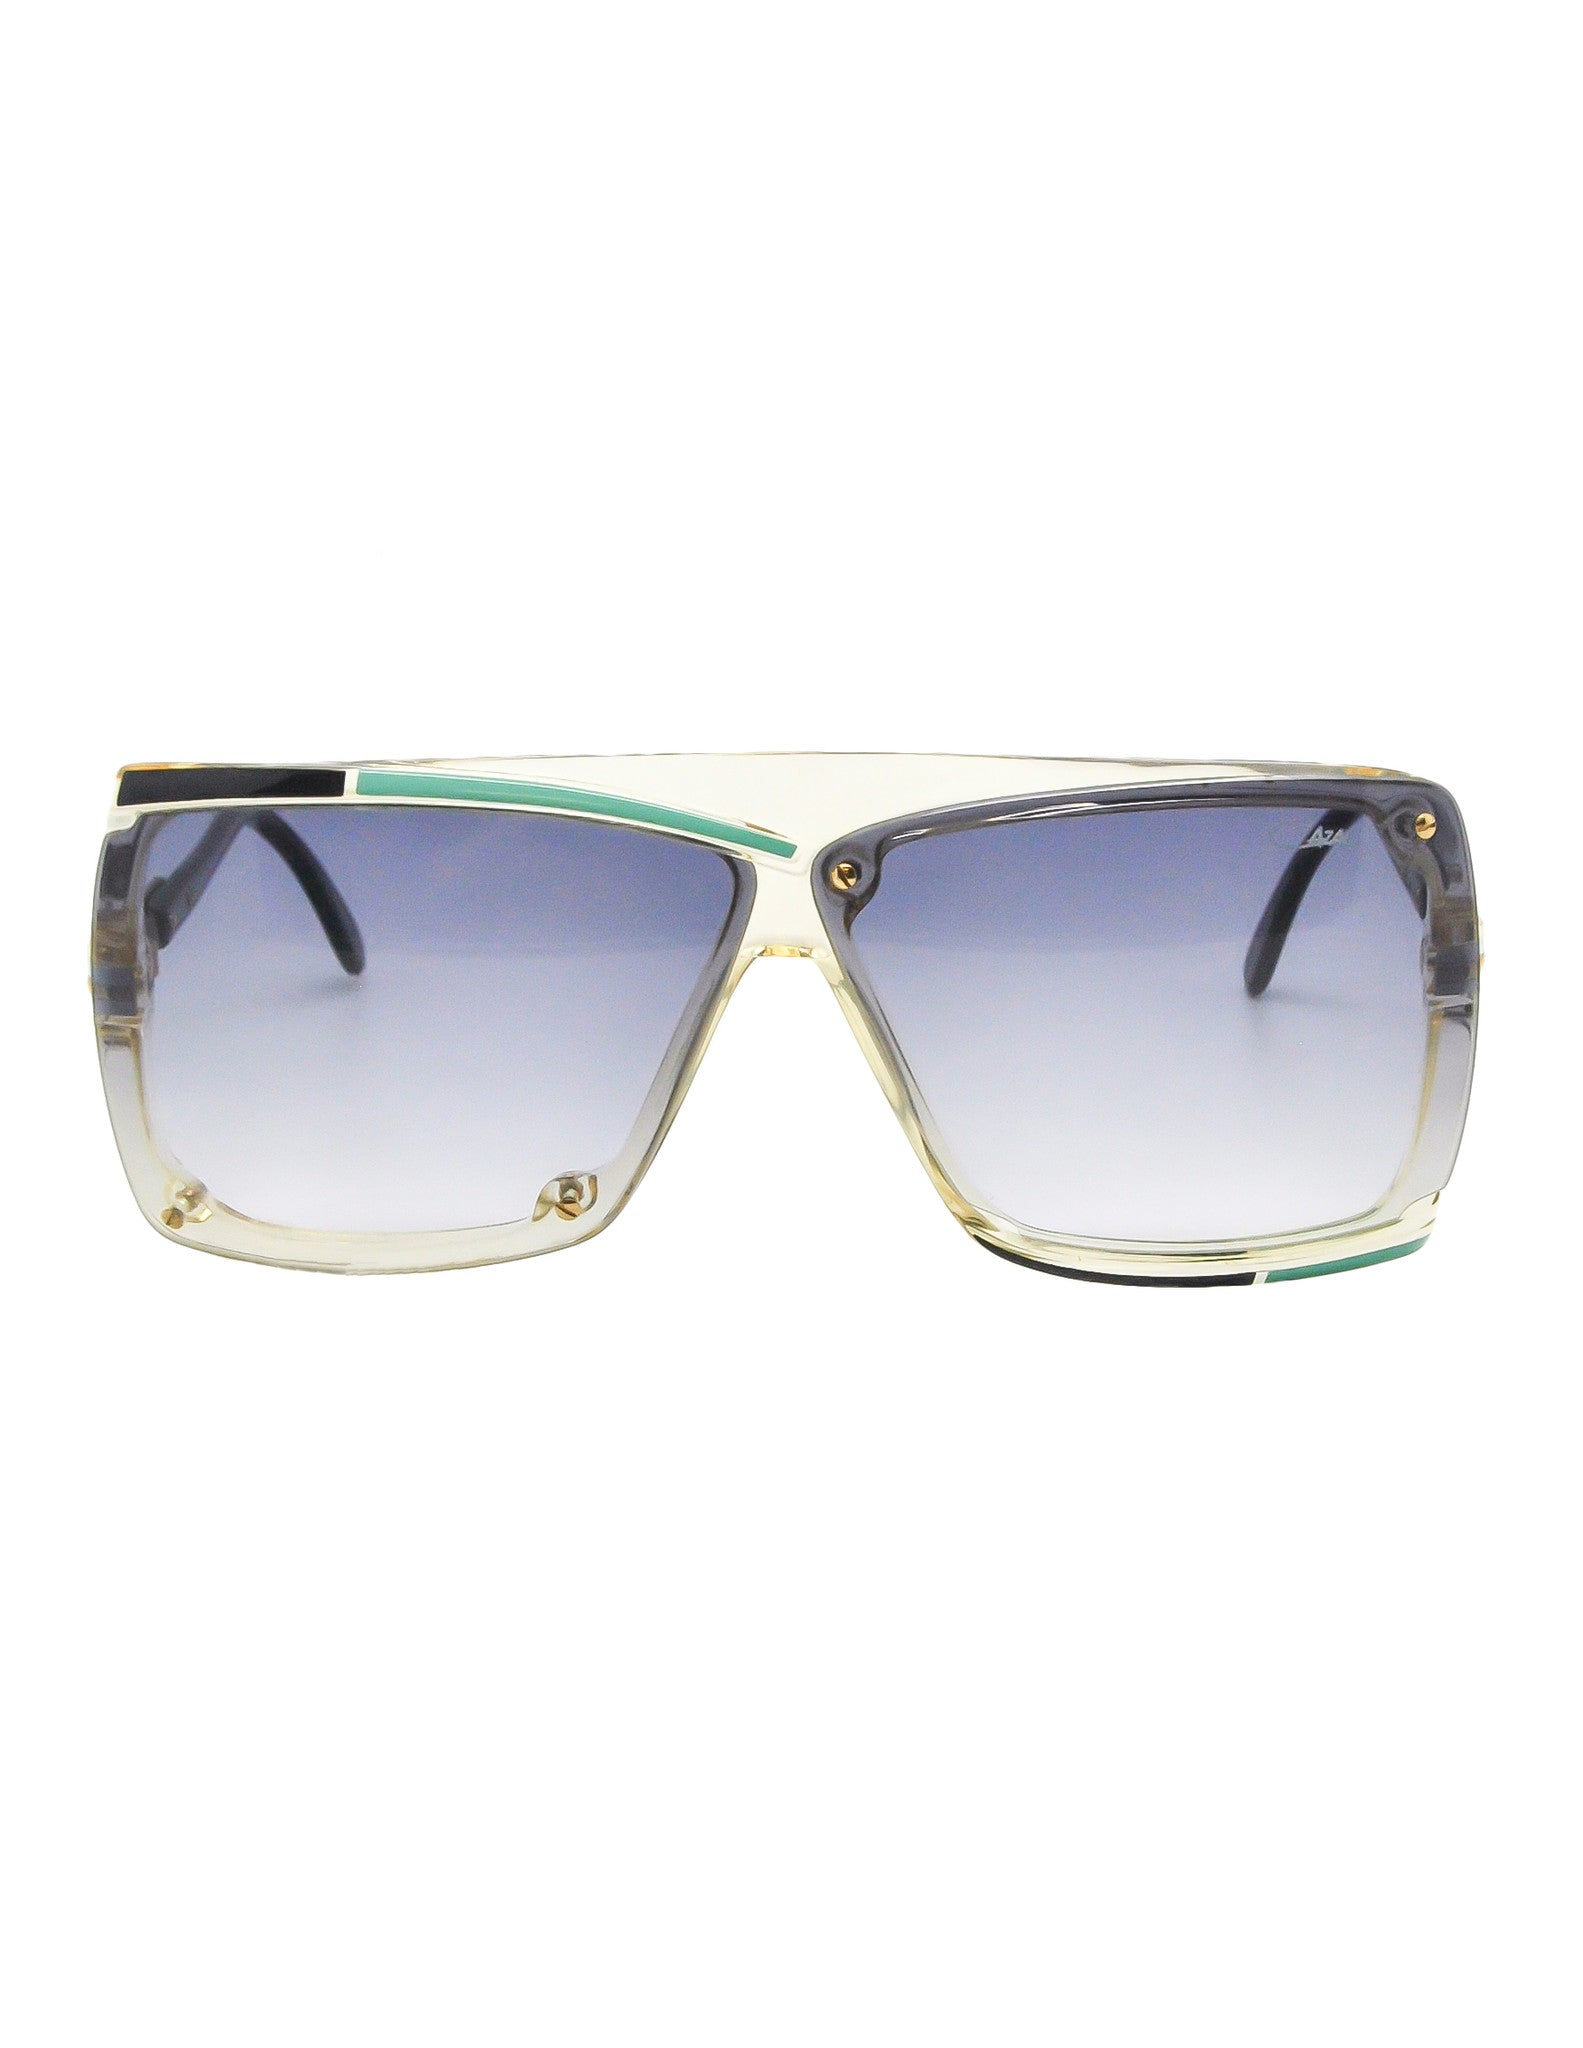 Cazal Vintage Navy Blue and Seafoam Sunglasses 859 277 - Amarcord Vintage Fashion  - 1